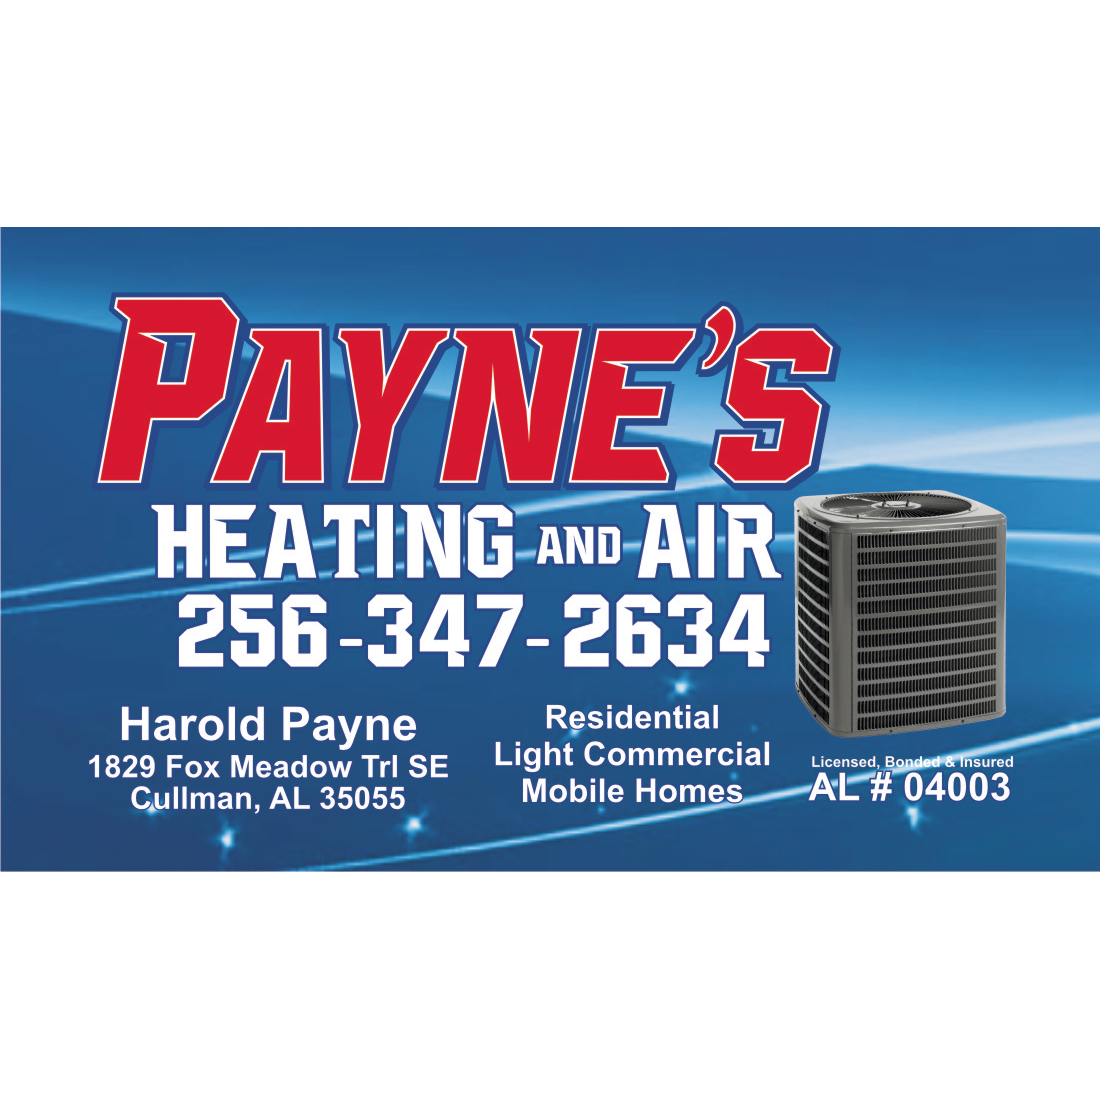 Payne's Heating and Air Conditioning Services